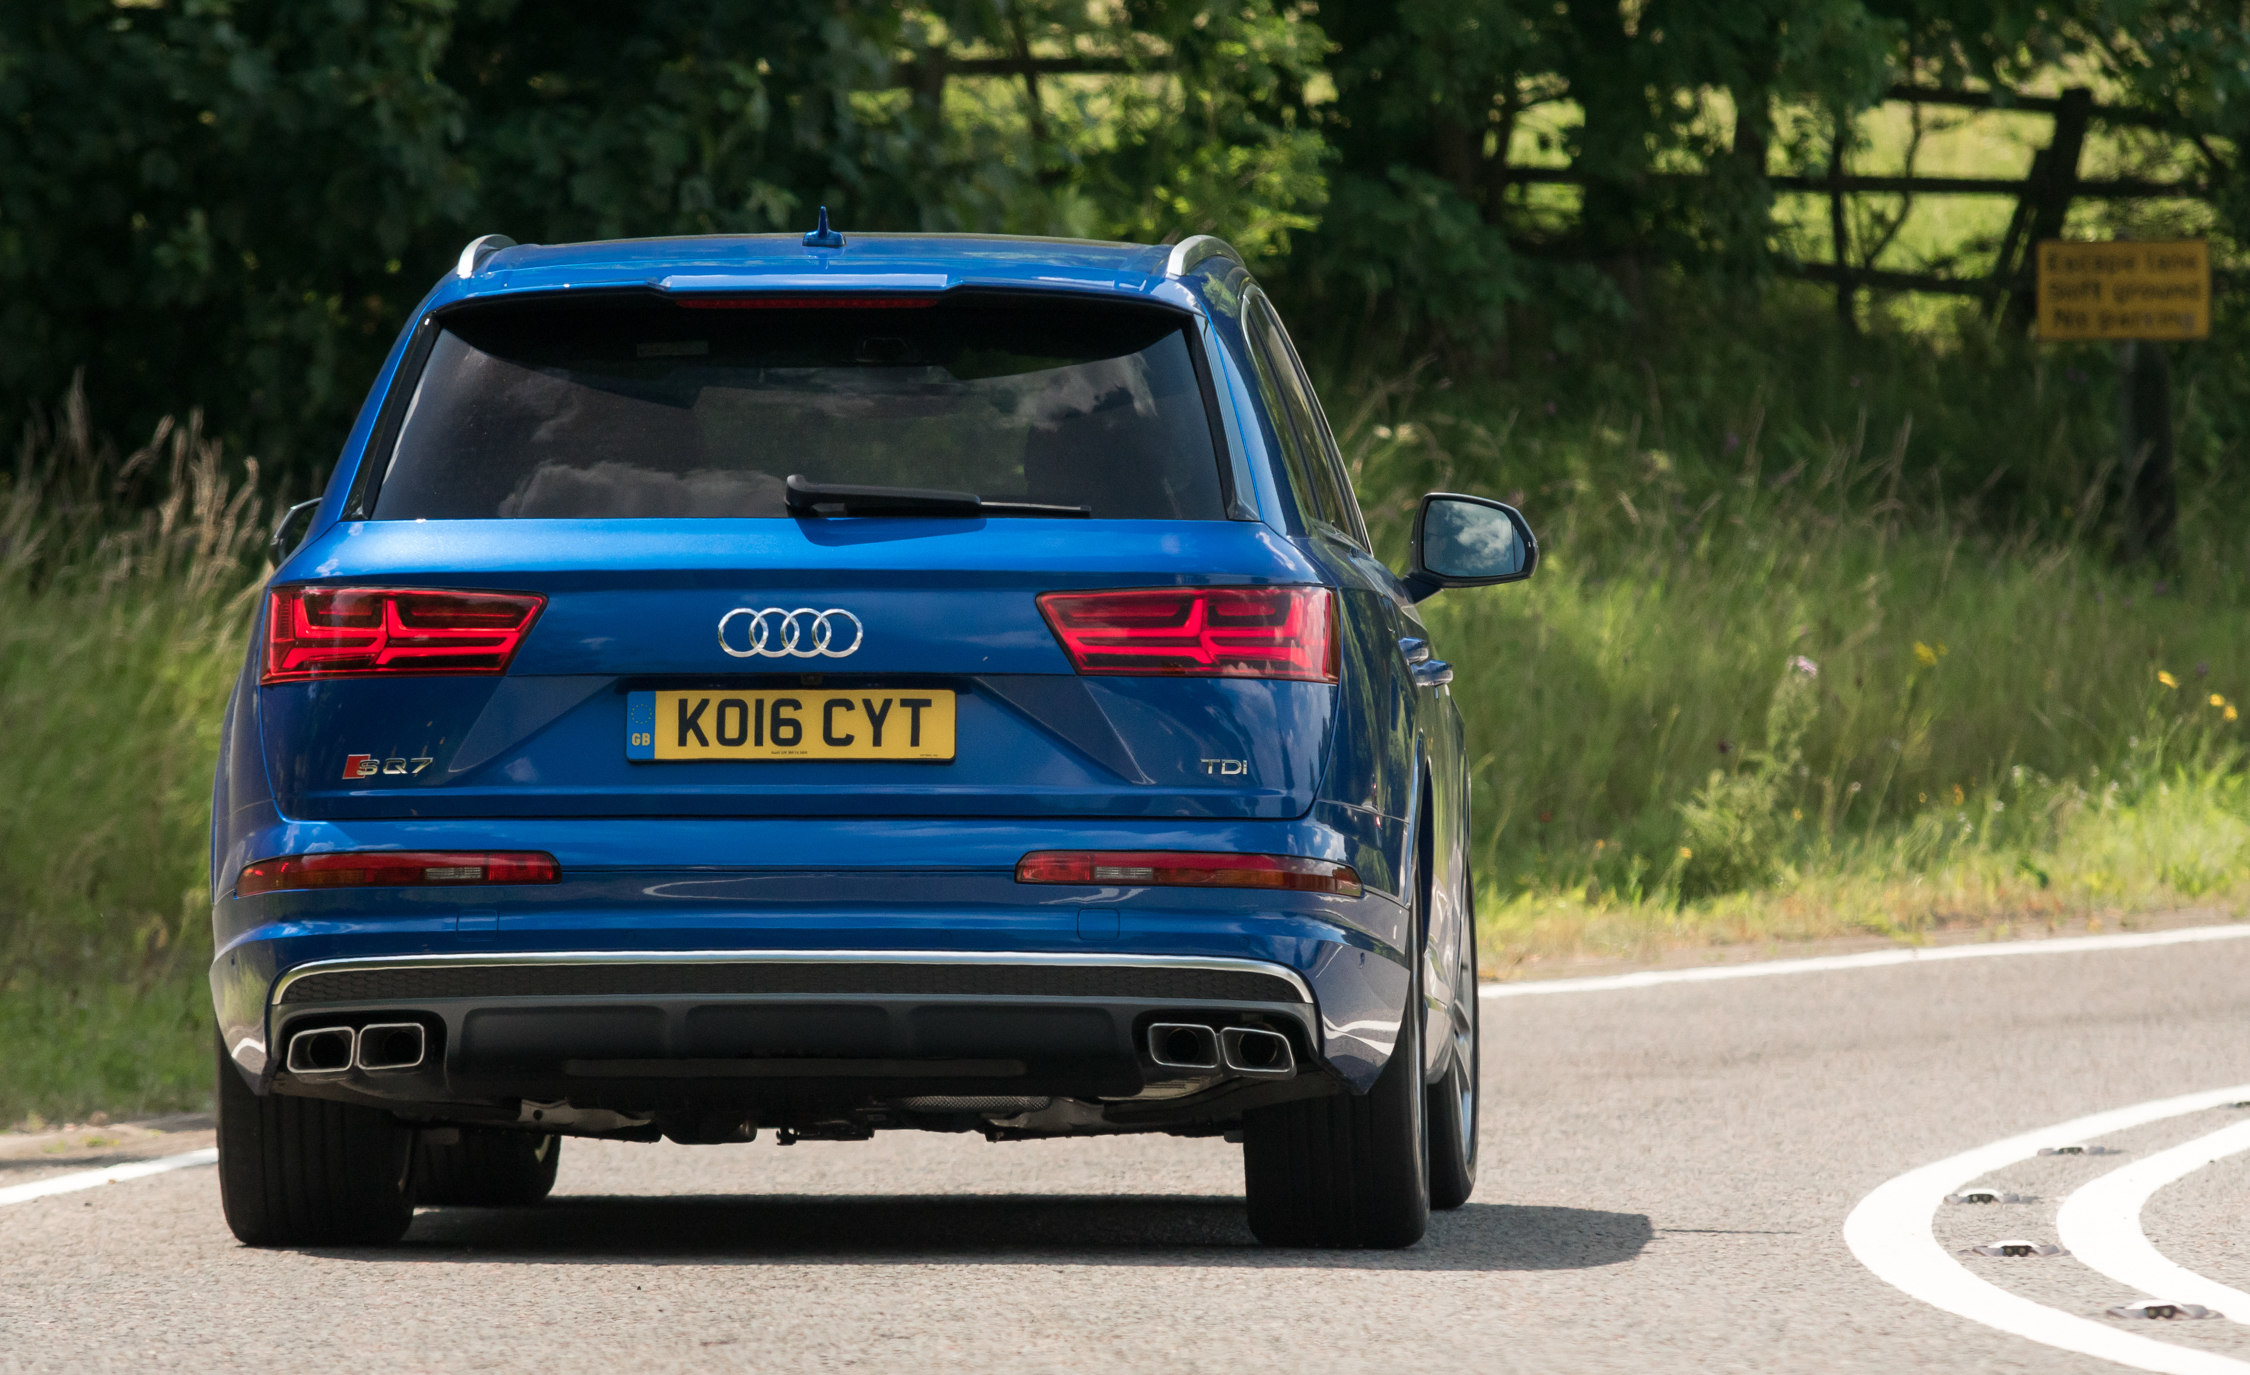 2017 Audi Sq7 Exterior Rear End (Photo 7 of 15)